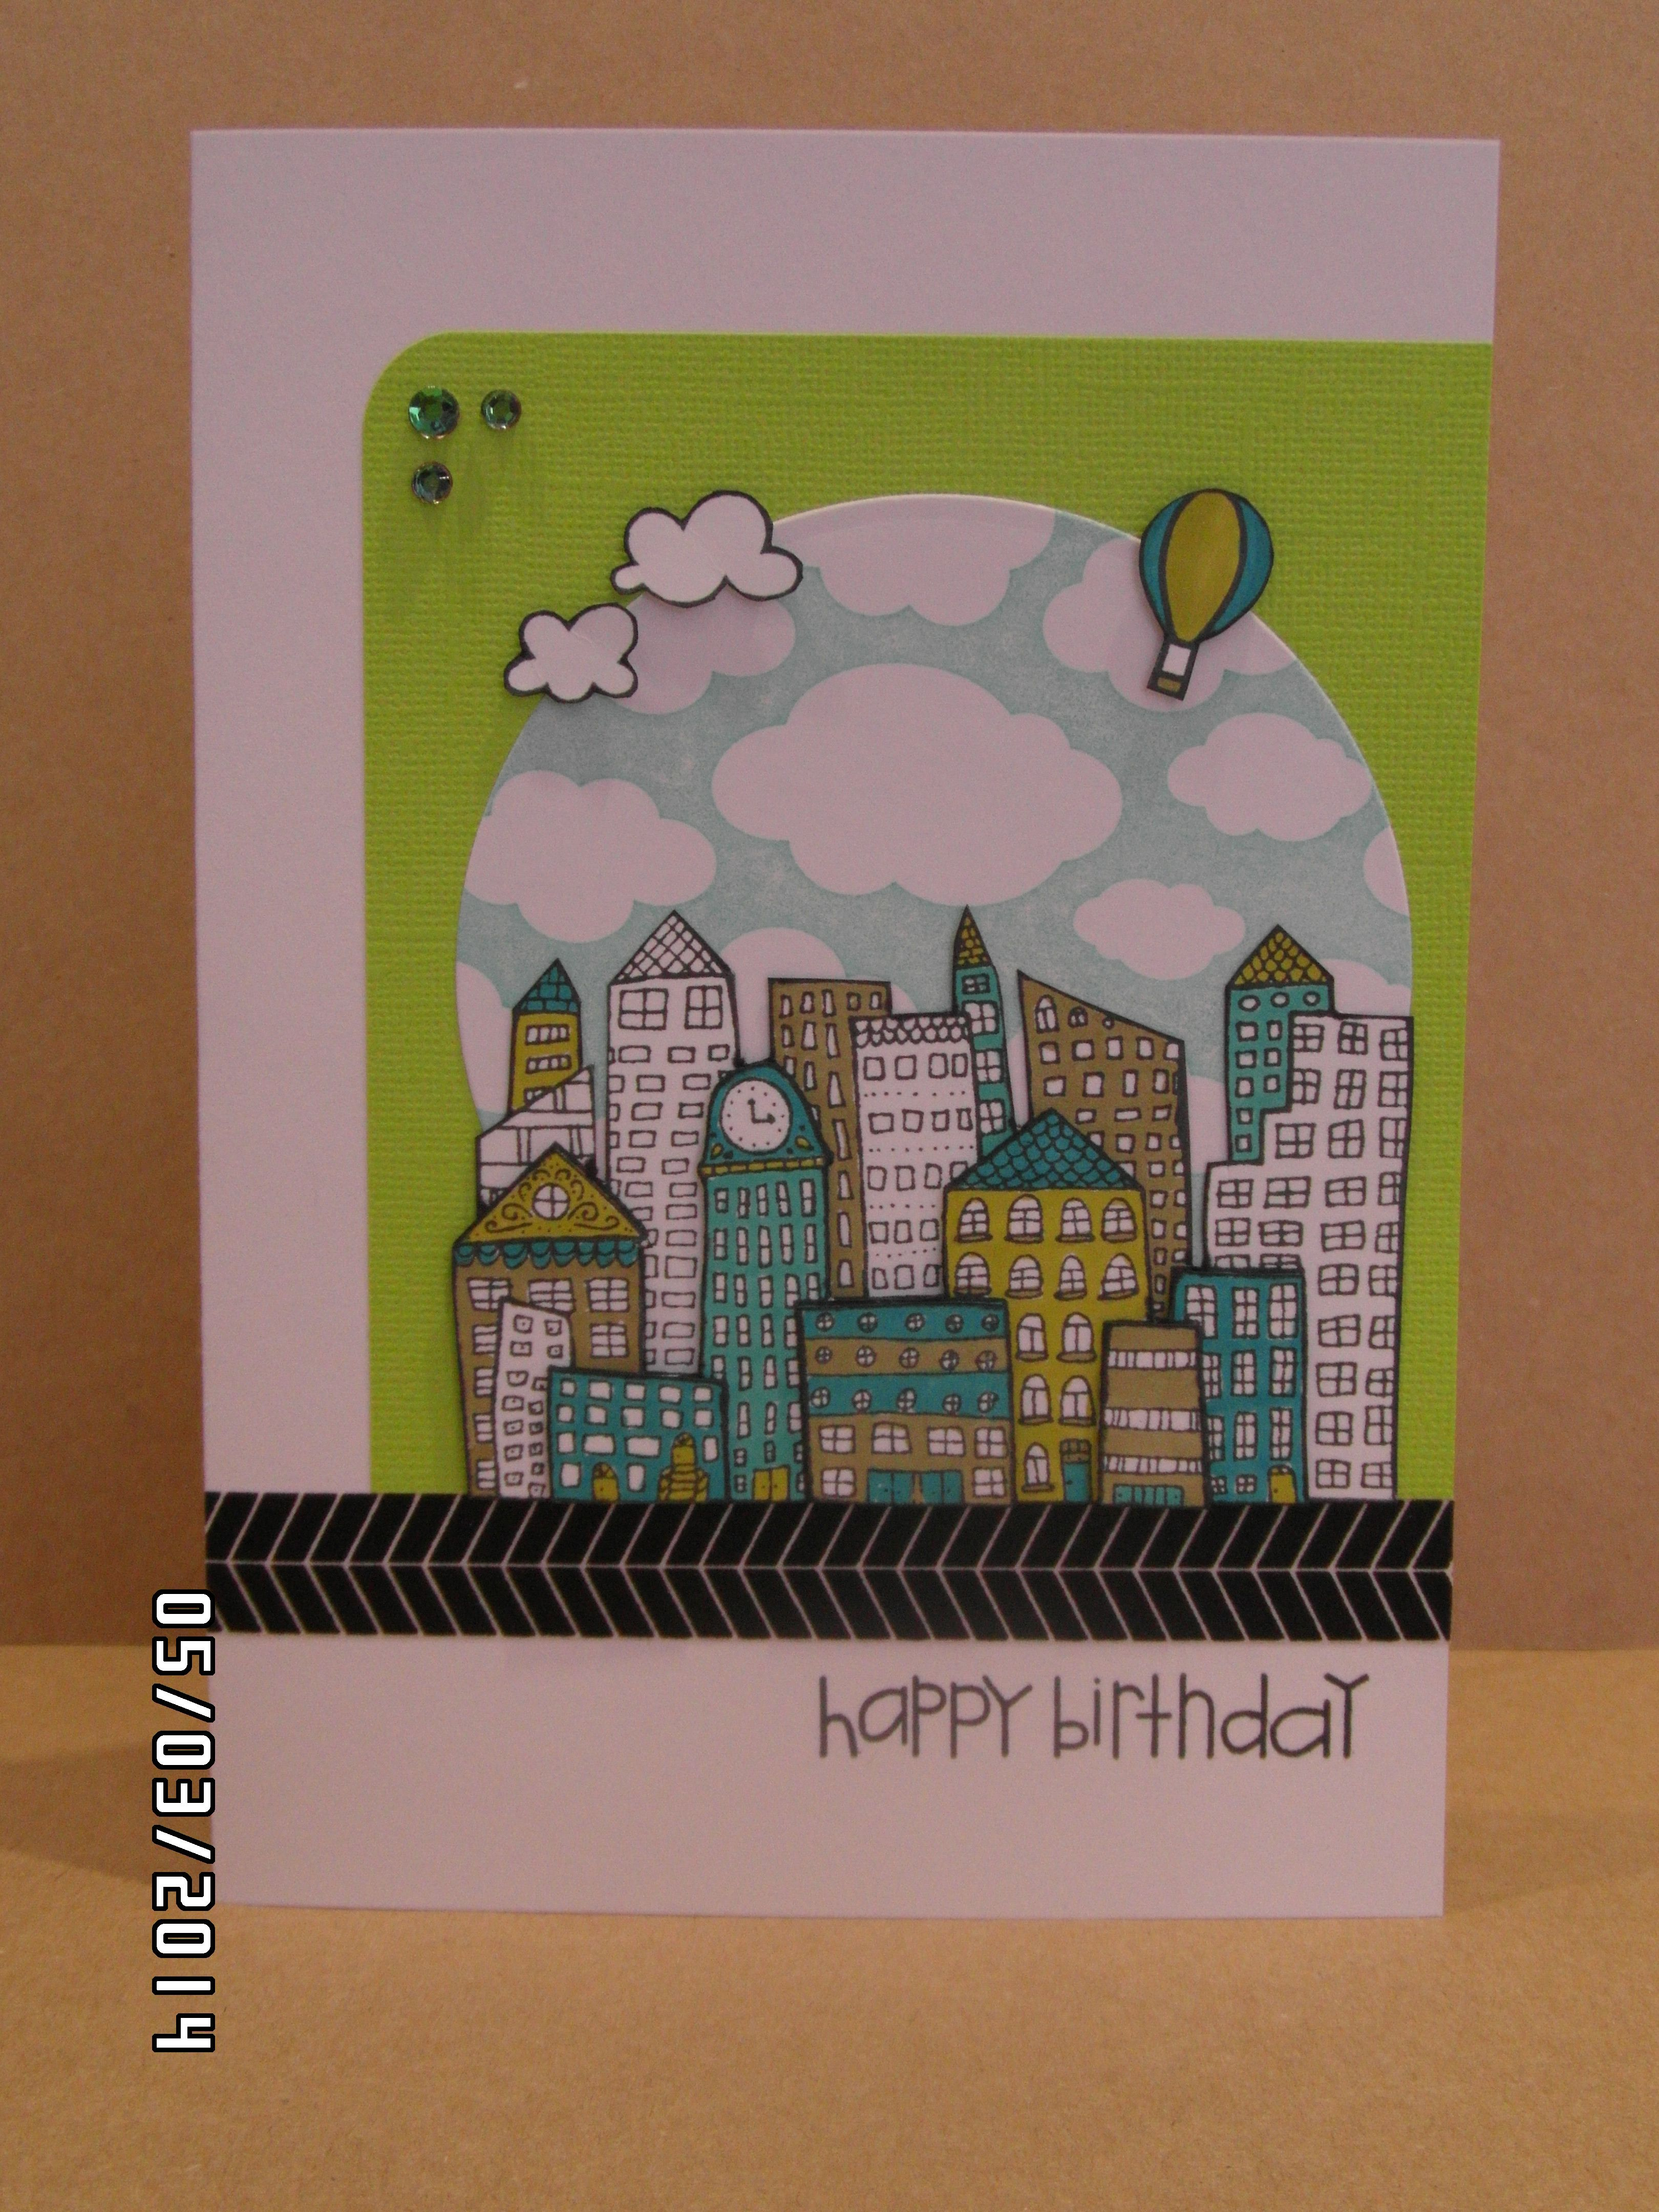 Hero Arts Silly Scape + Clouds Background + Paper Smooches Sentiment Sampler + Metropolis stamps used